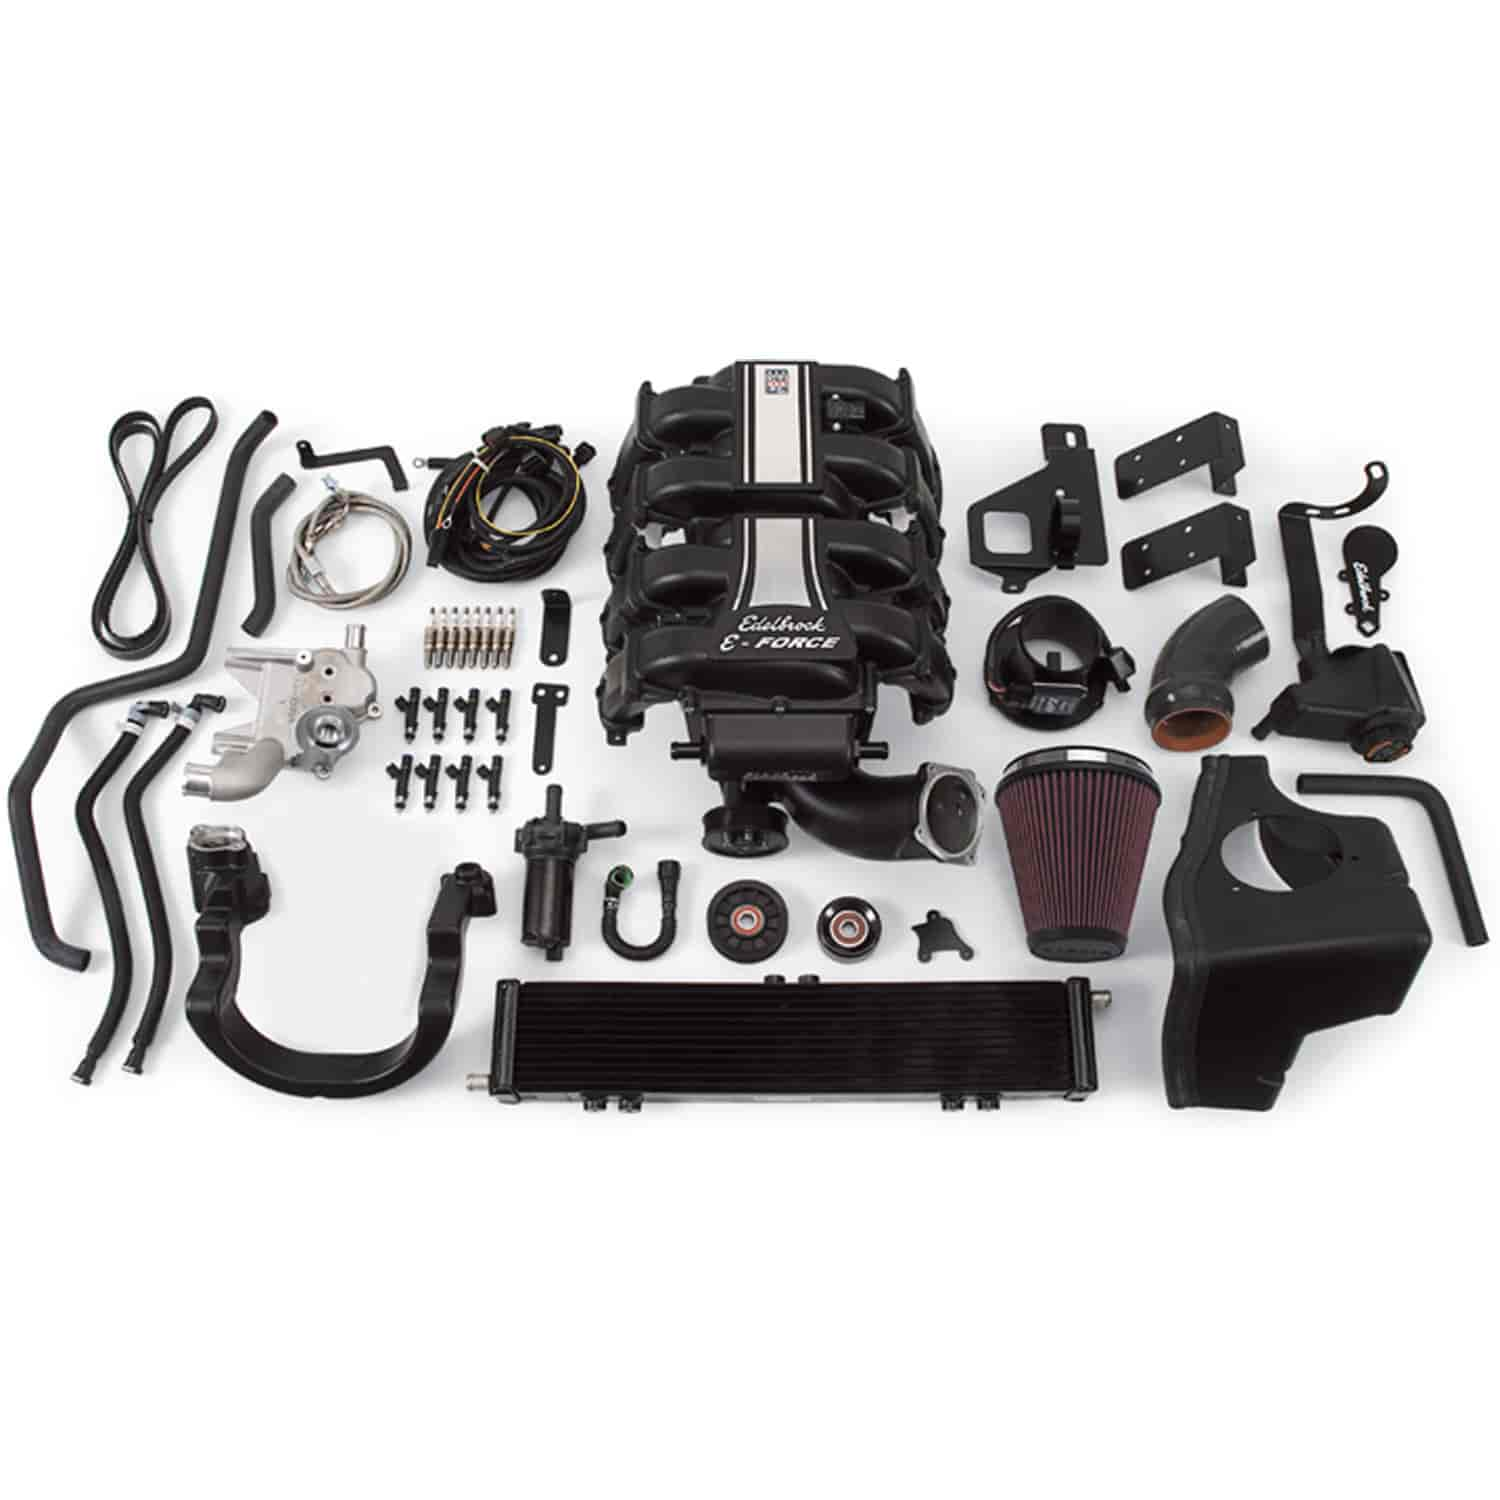 Edelbrock 15810 - Edelbrock E-Force Supercharger Kit For Ford F-150